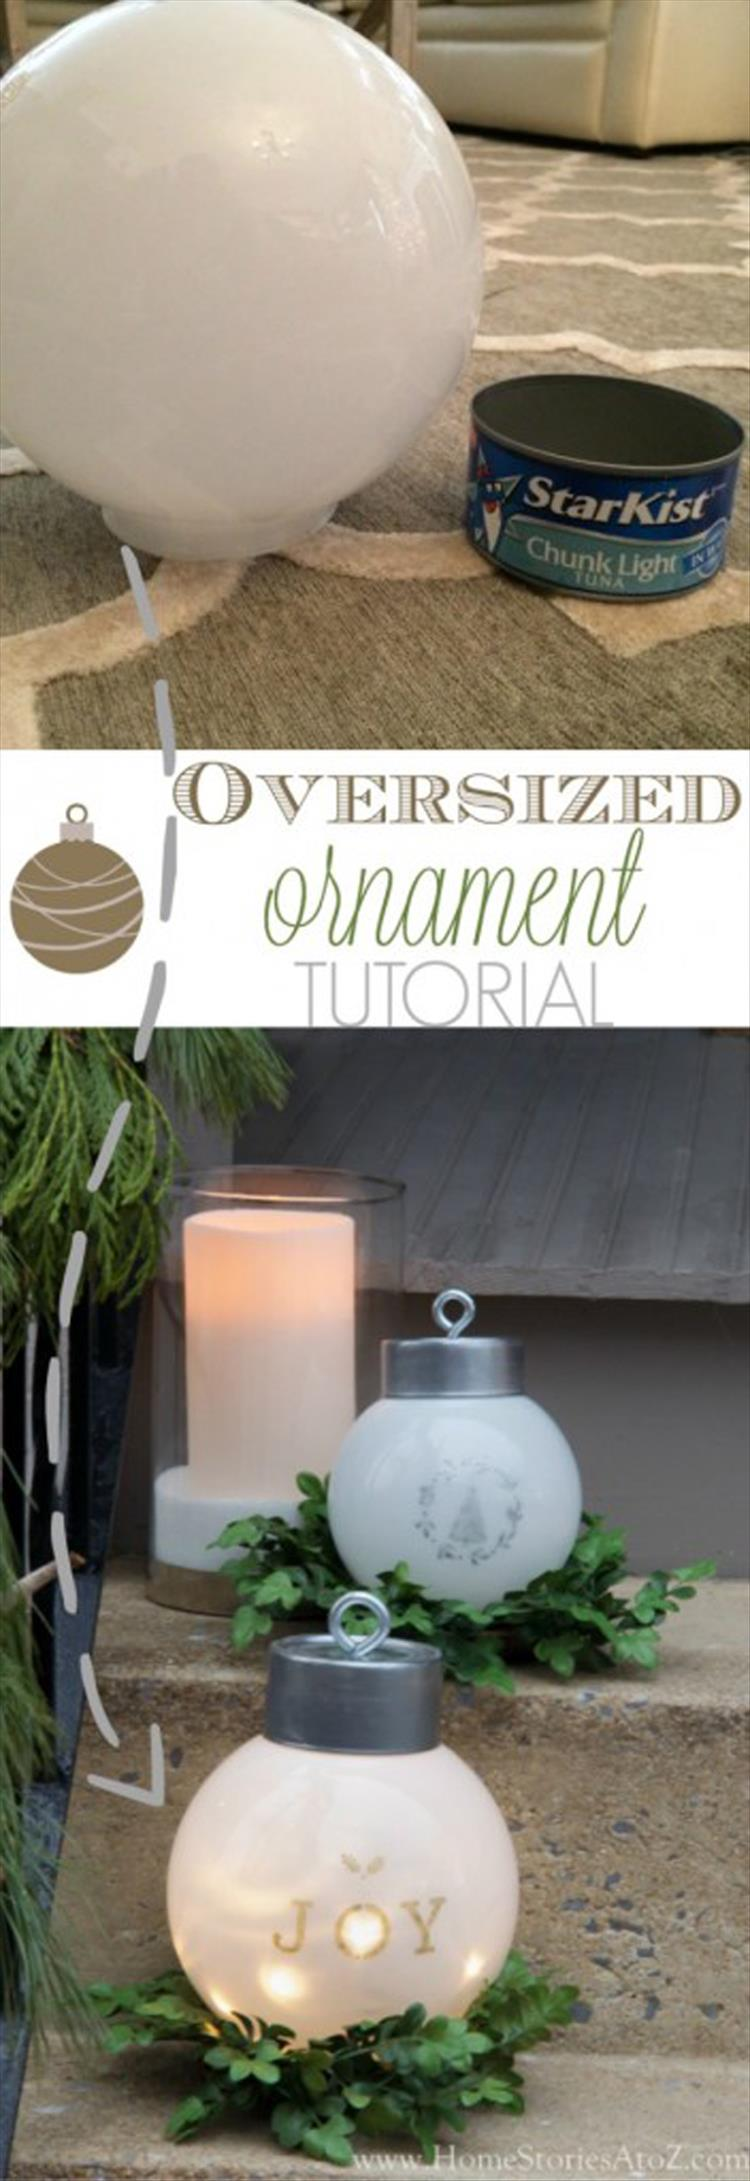 DIY Oversized Ornaments